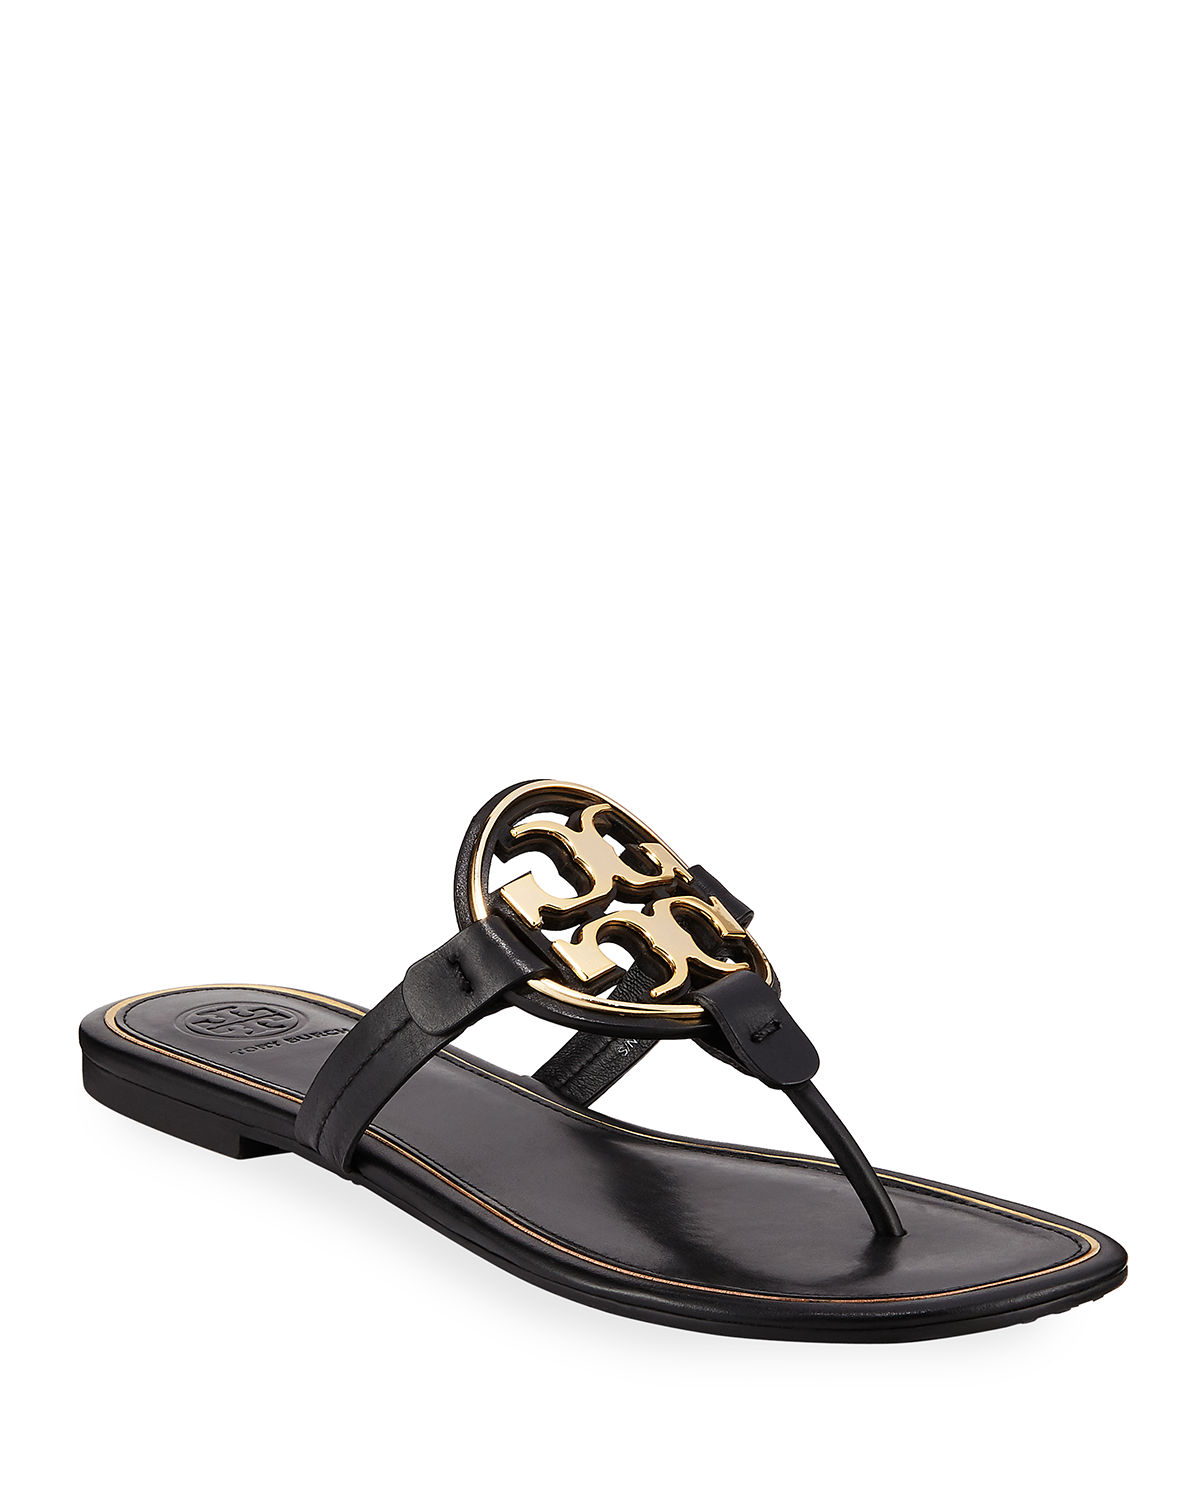 8a634490bef Tory Burch Miller Flat Metal Logo Slide Sandals